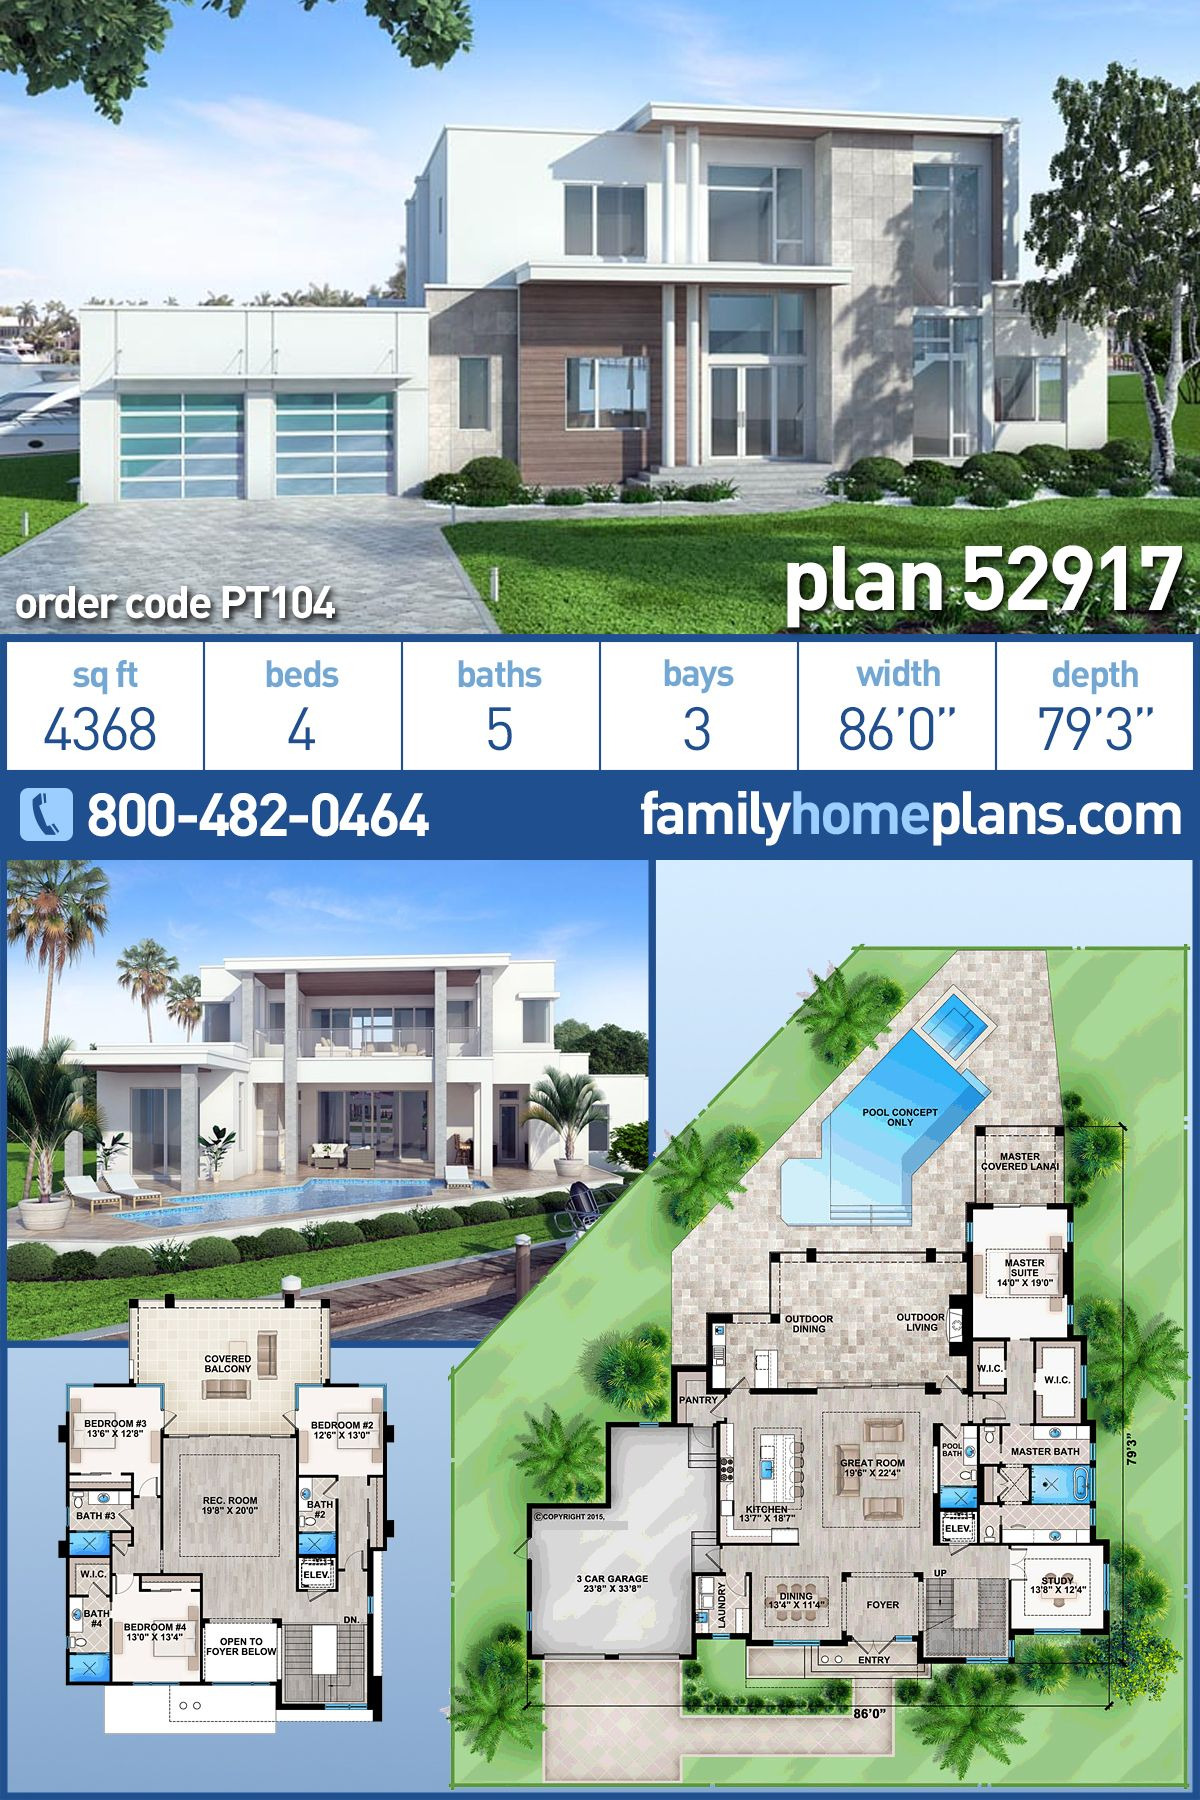 Luxury Modern Home Plans New Contemporary Modern House Plan with 4 Beds 5 Baths